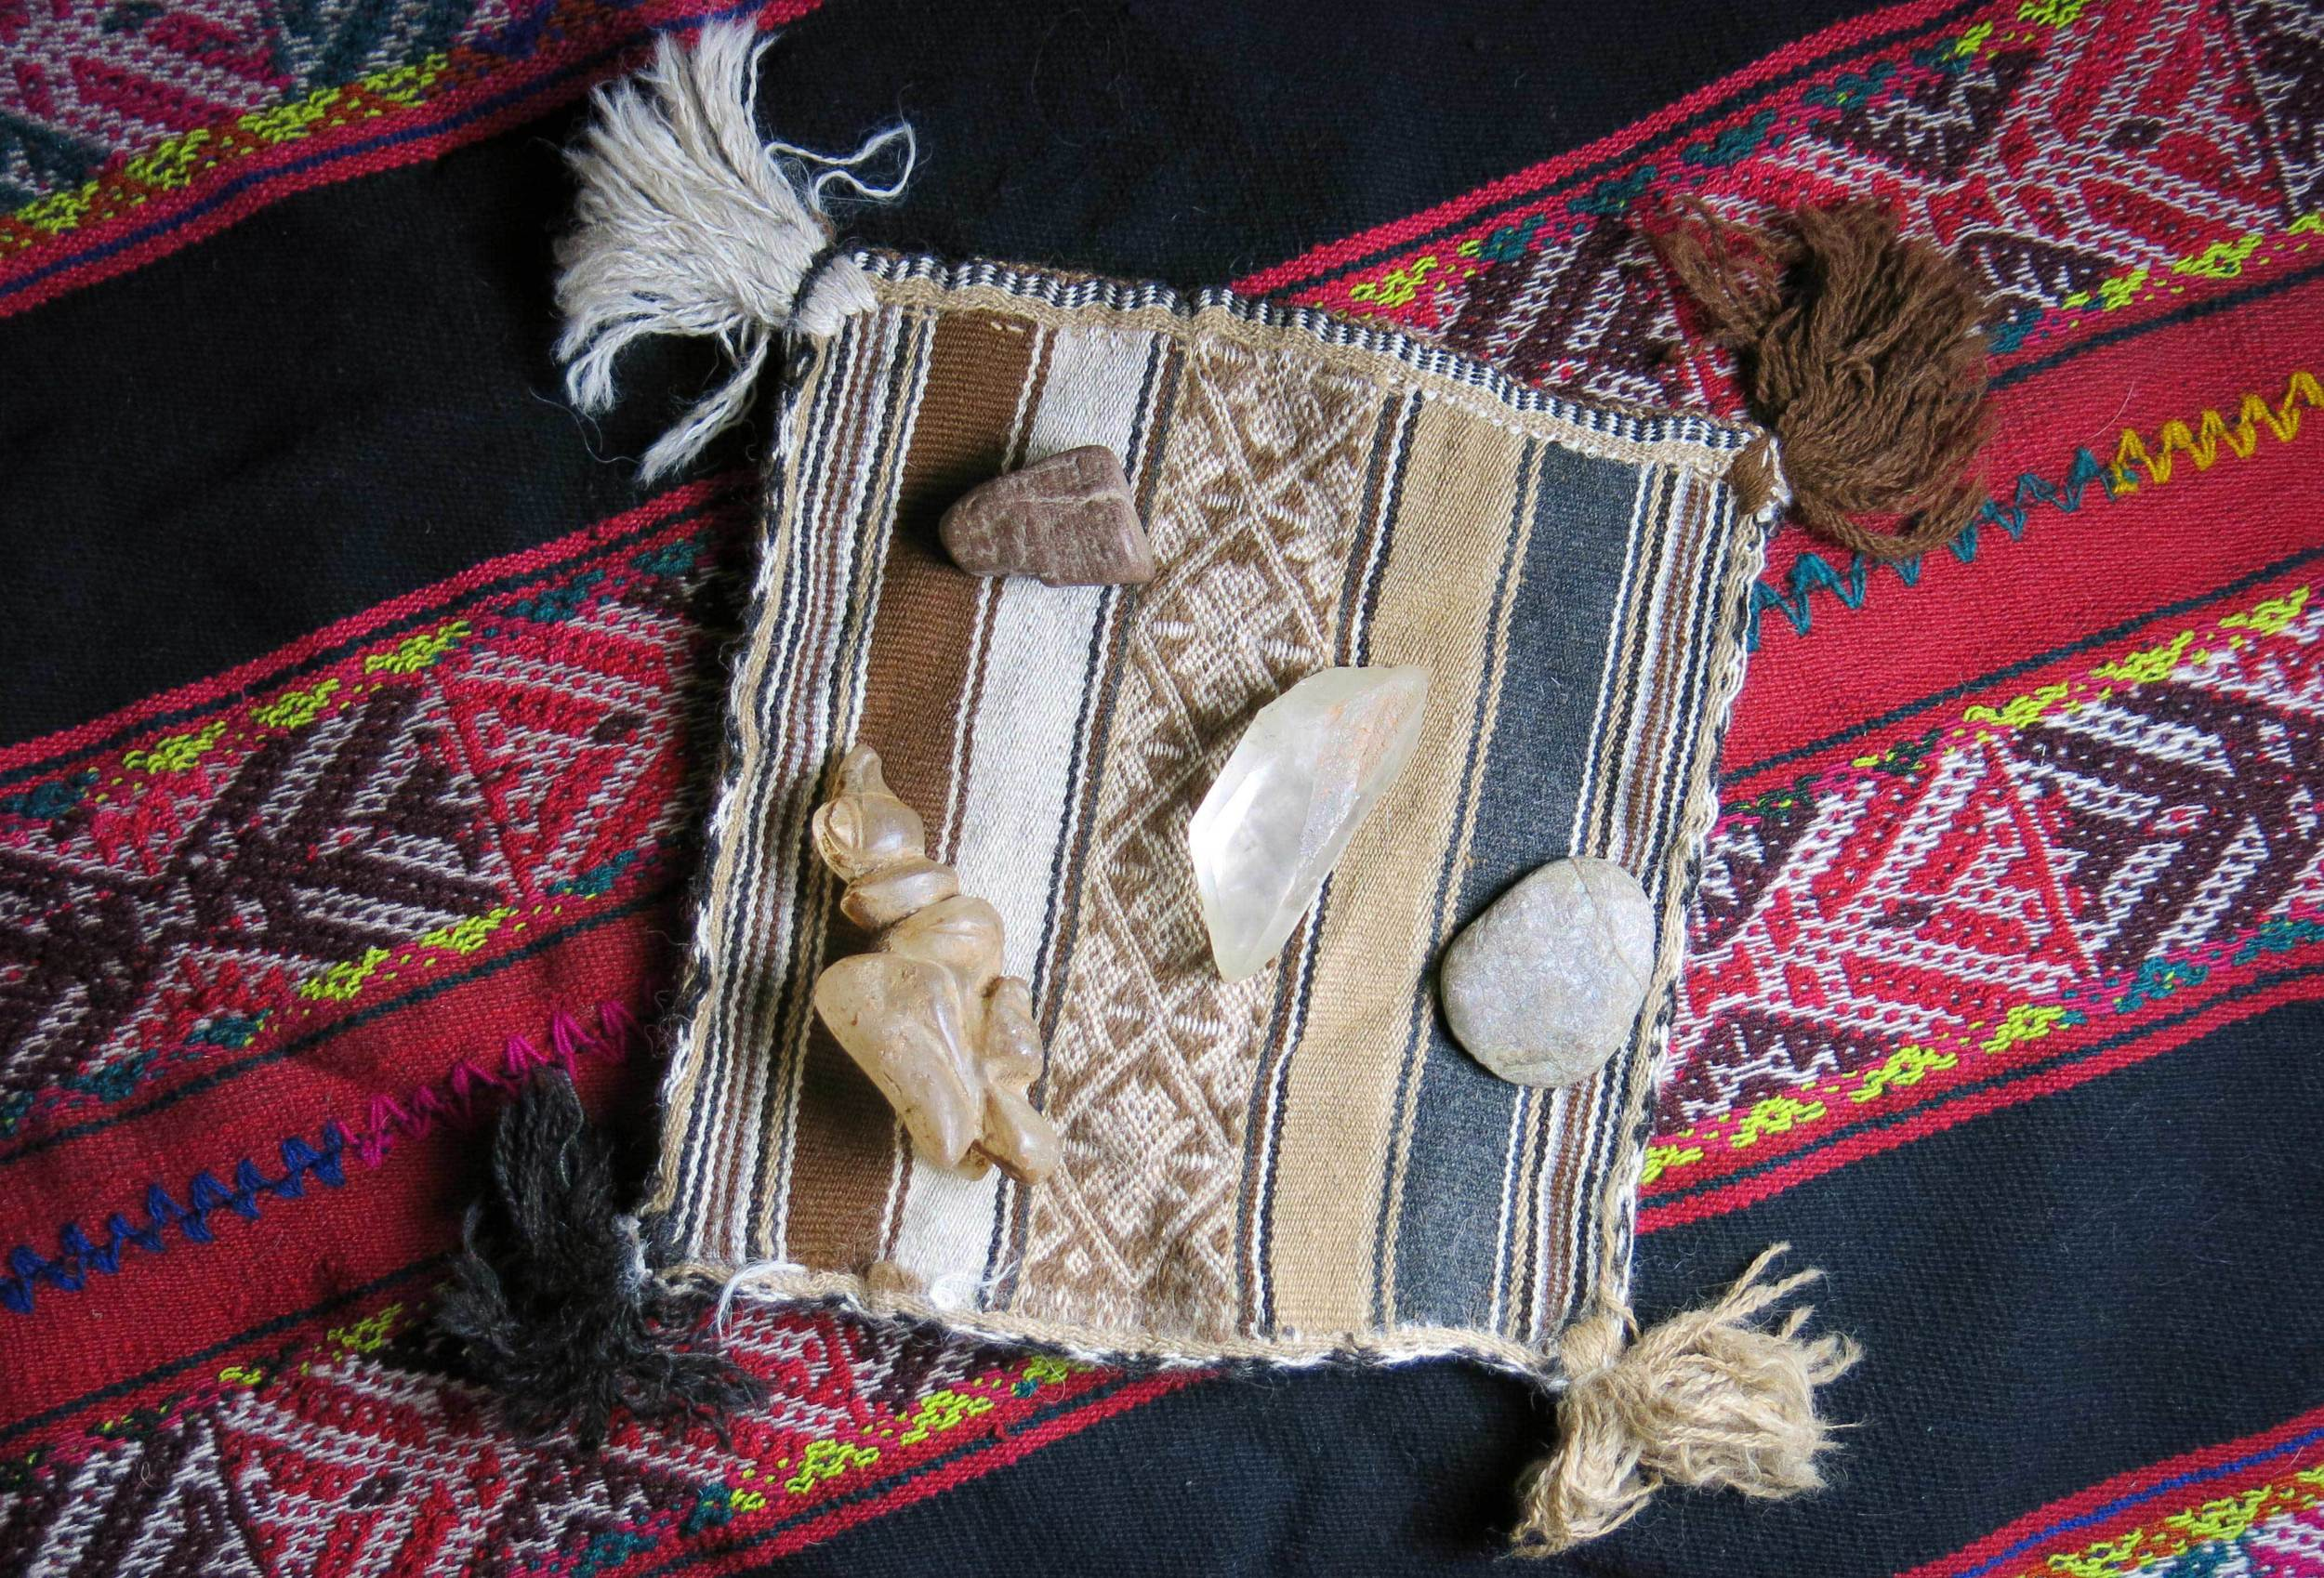 This is anAlto mesayoq mesagiven to Liz in Peru. Alto mesayoq is one of the mystical paths in the Andean tradition. They work with the world of living energy andcommunicate with the spirits of the mountains andstars.